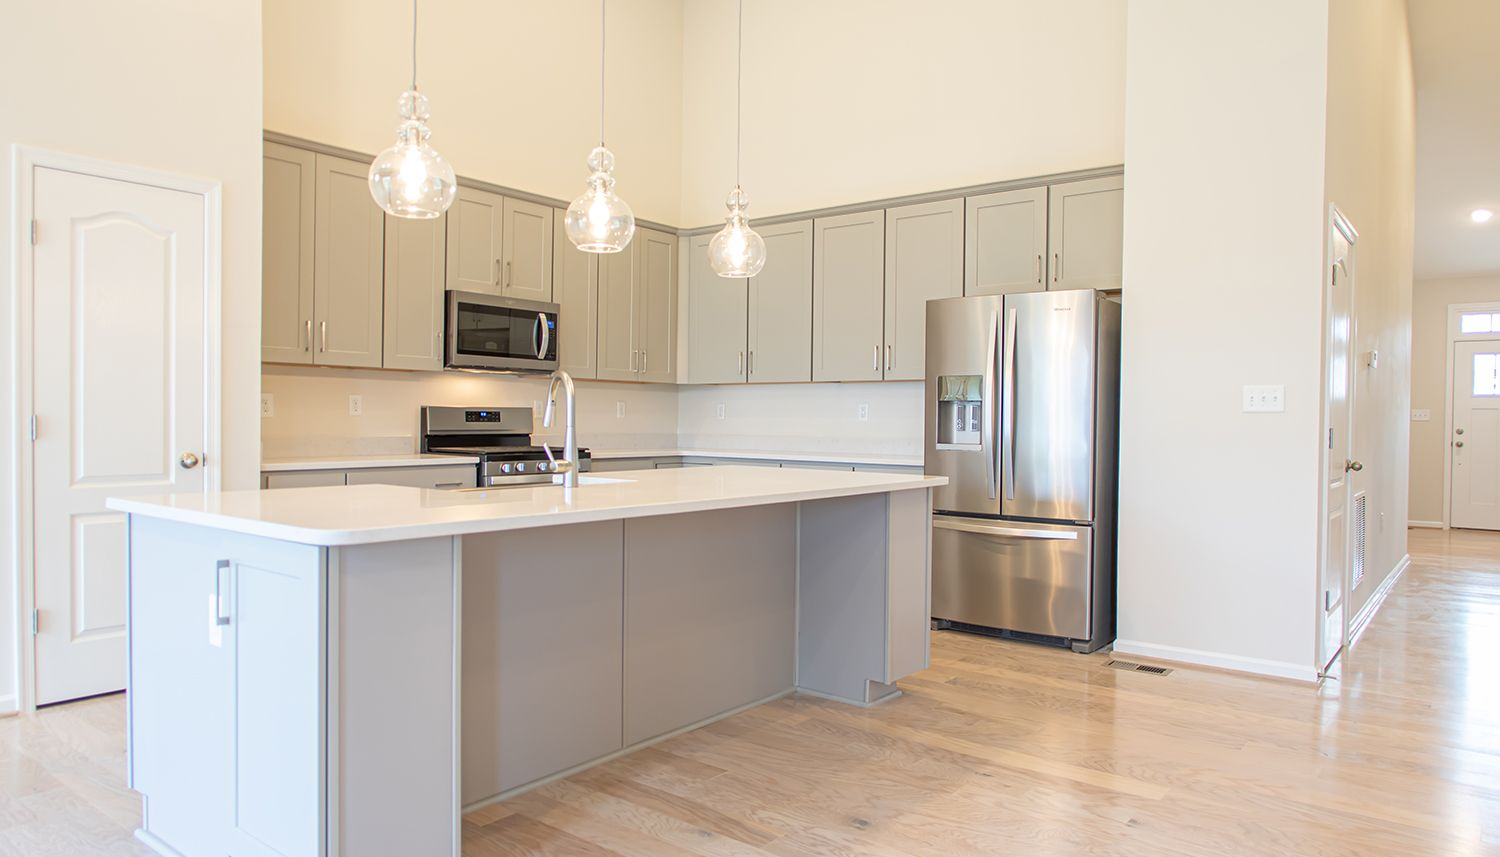 Kitchen featured in the Birch ll By Dan Ryan Builders in Hagerstown, MD